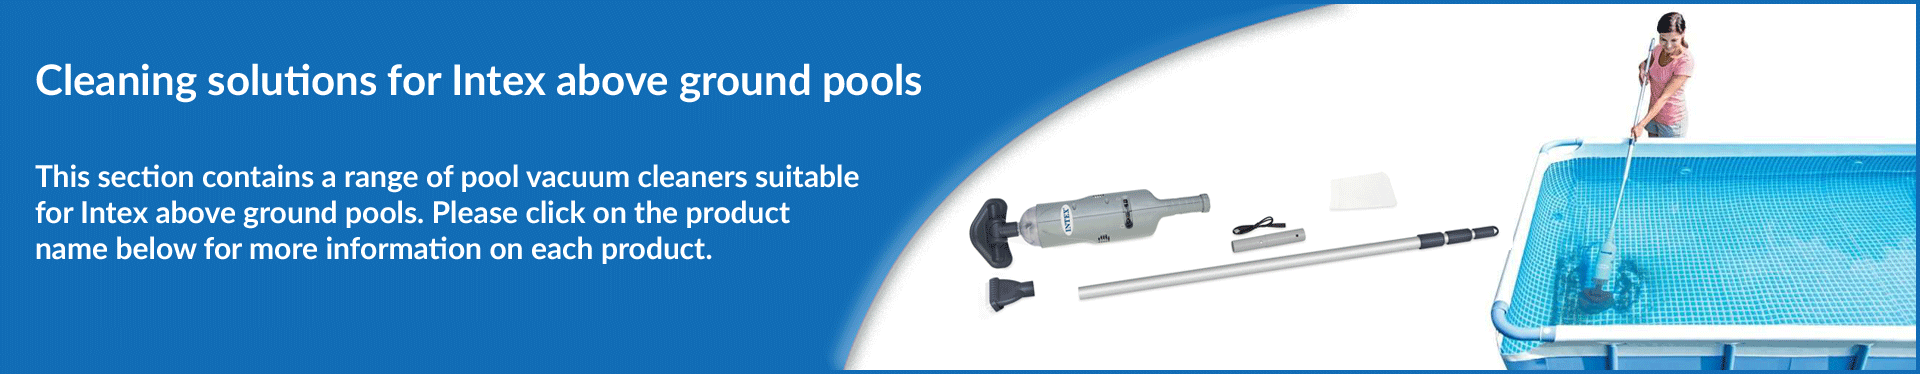 Intex Pool Cleaners